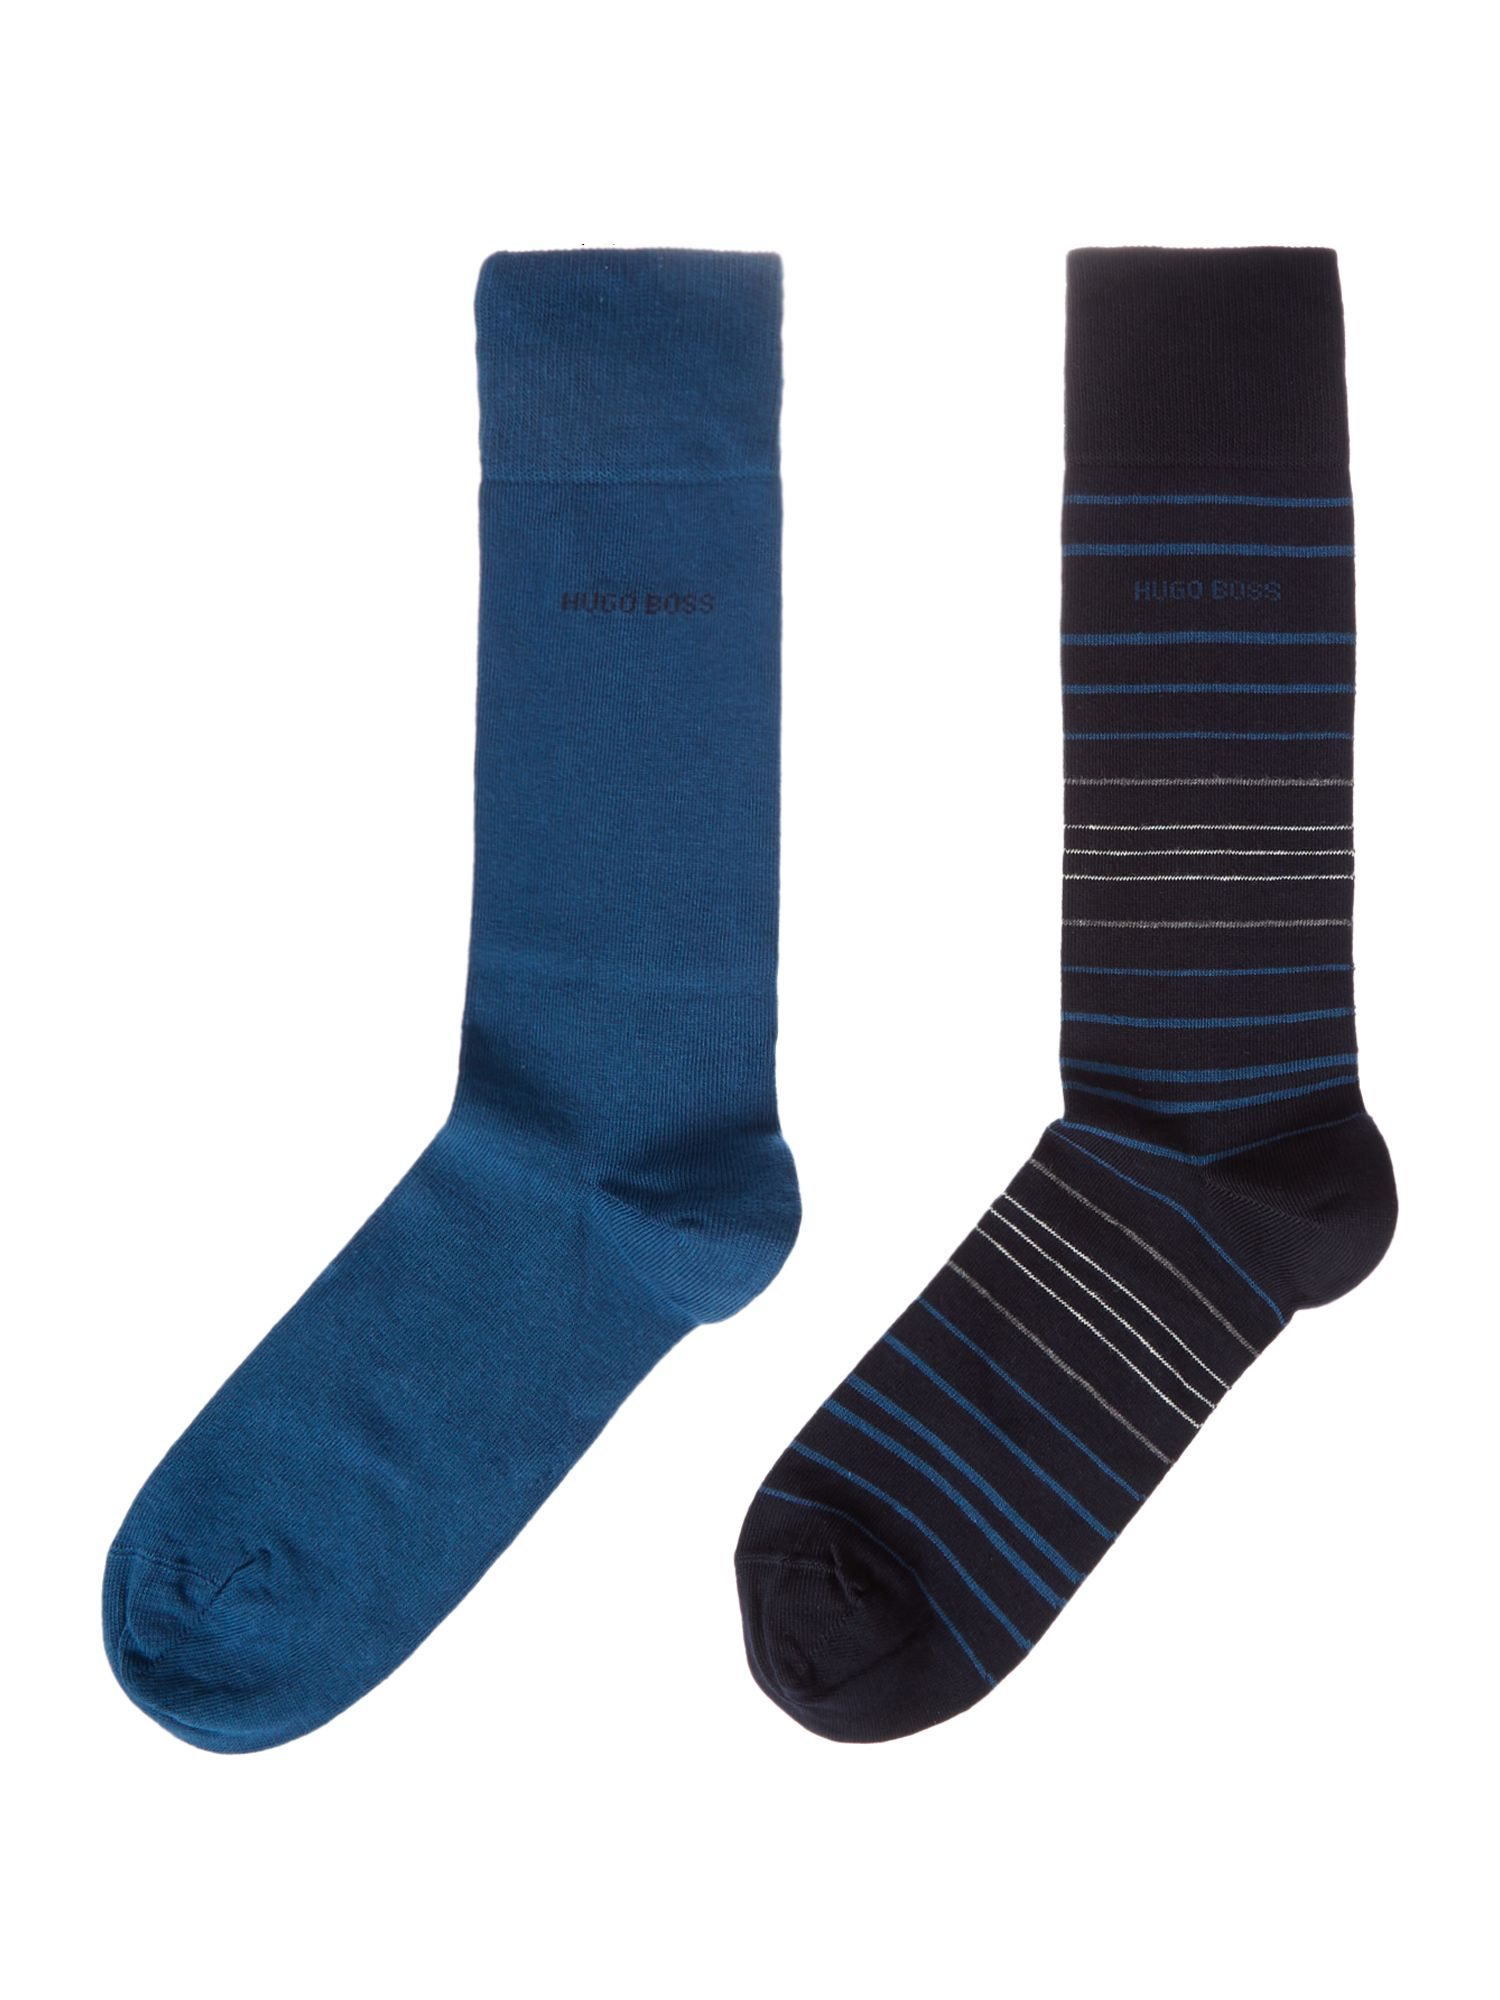 Mens Hugo Boss 2 Pack Stripe and Plain Socks Navy